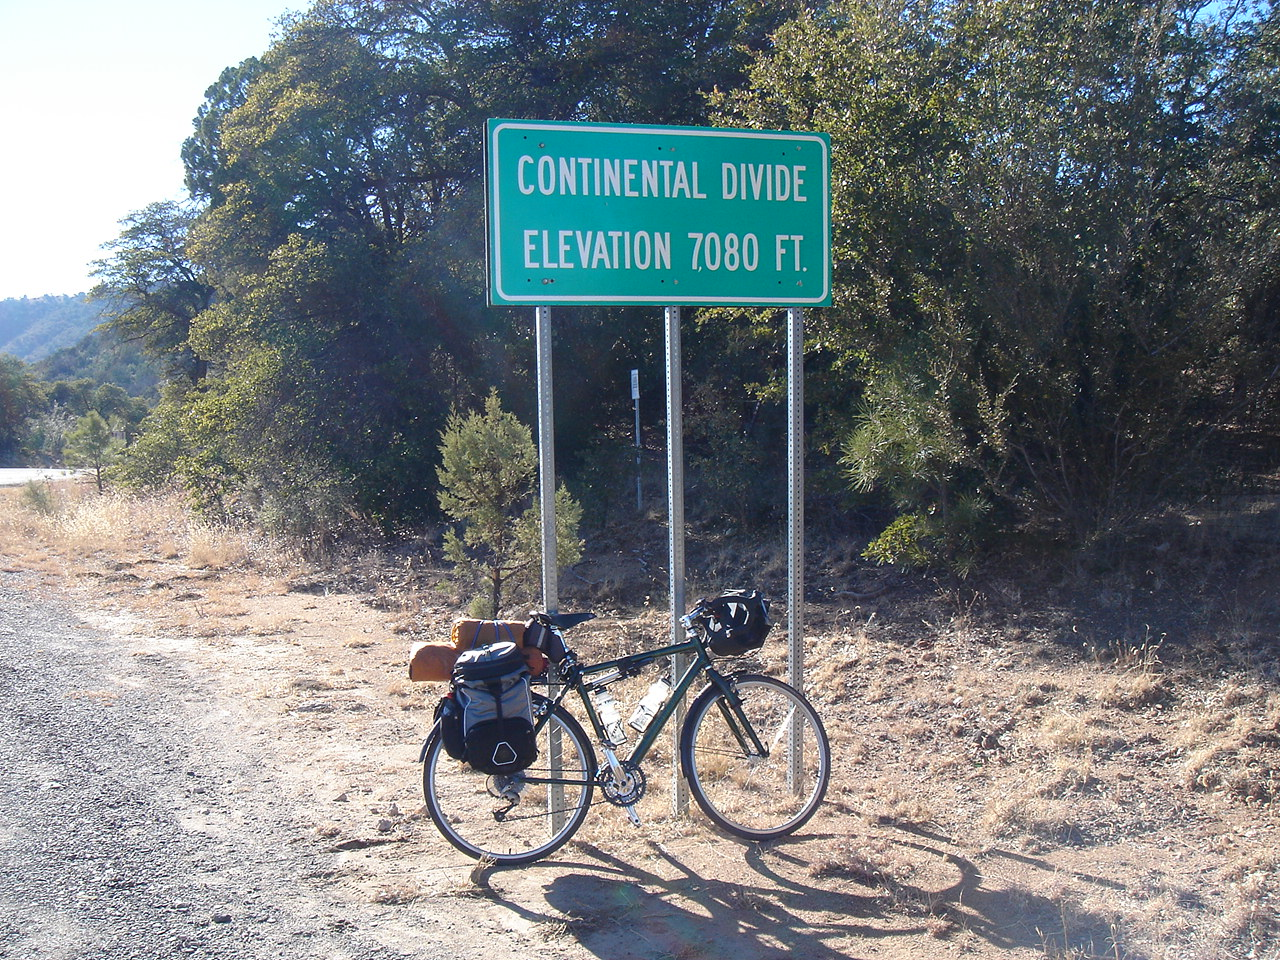 December 16, 2005, Continental Divide near Silver City, NM